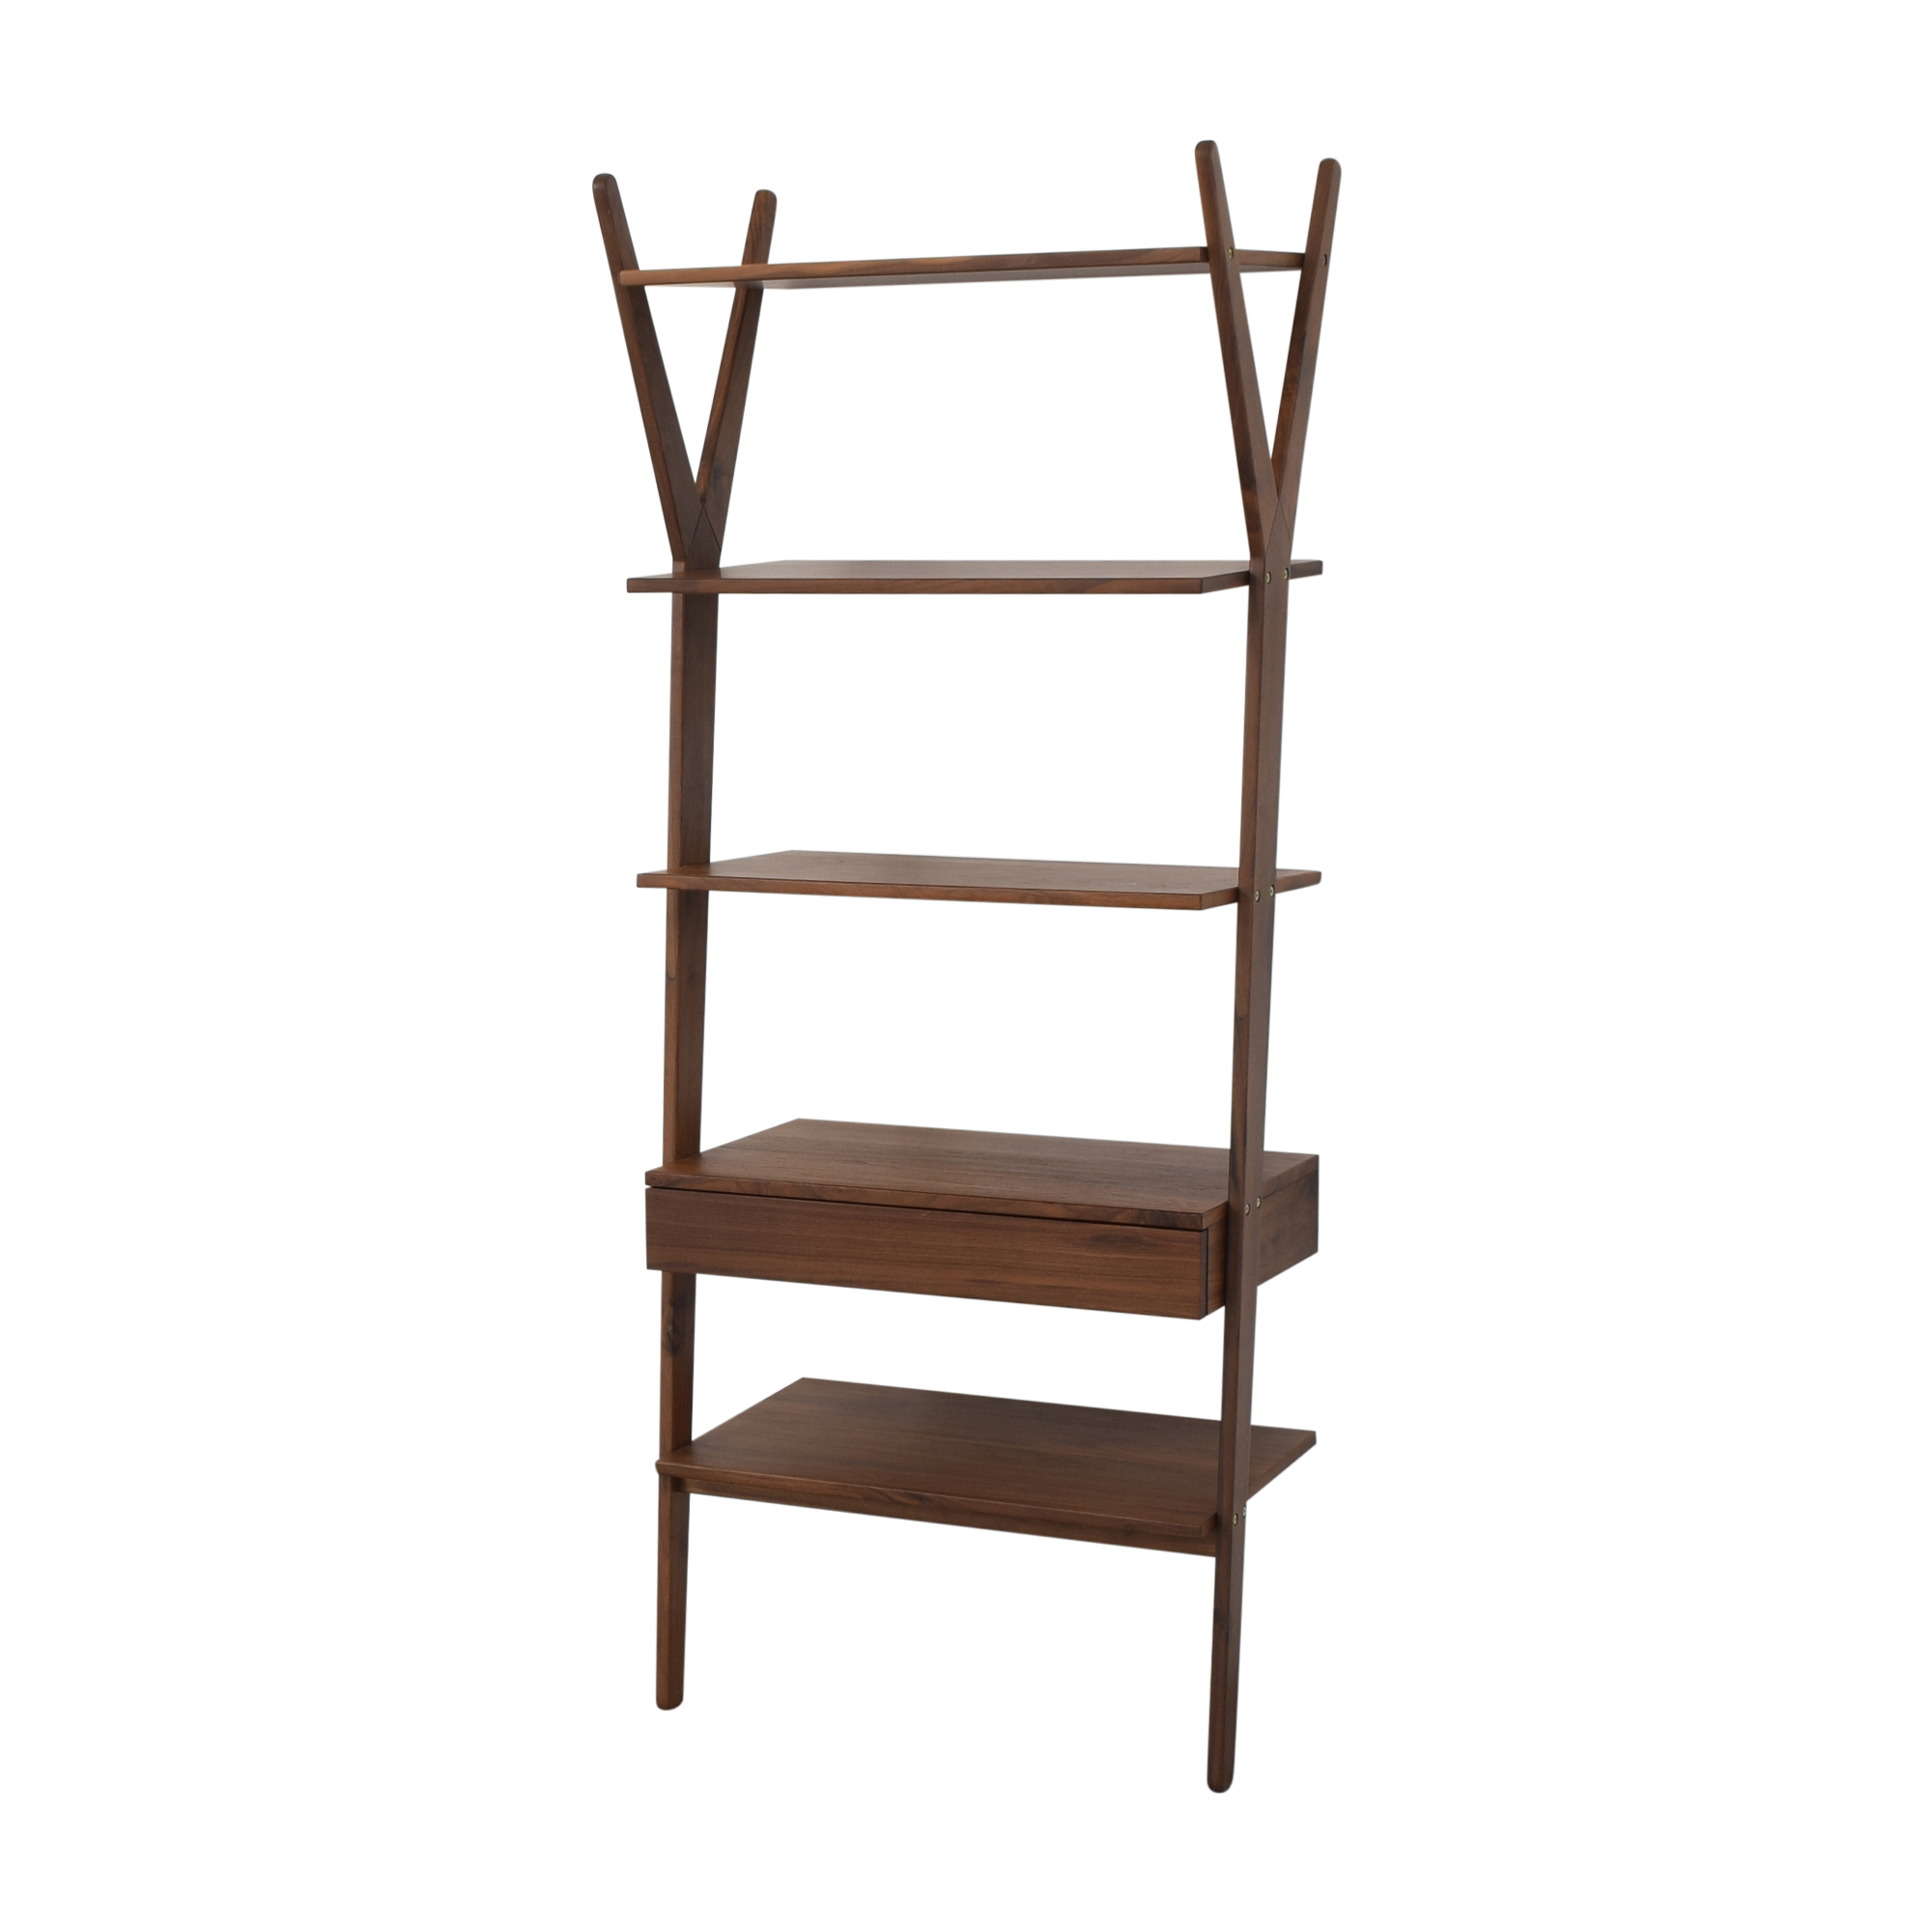 Article Article Lignum Walnut Bookshelf